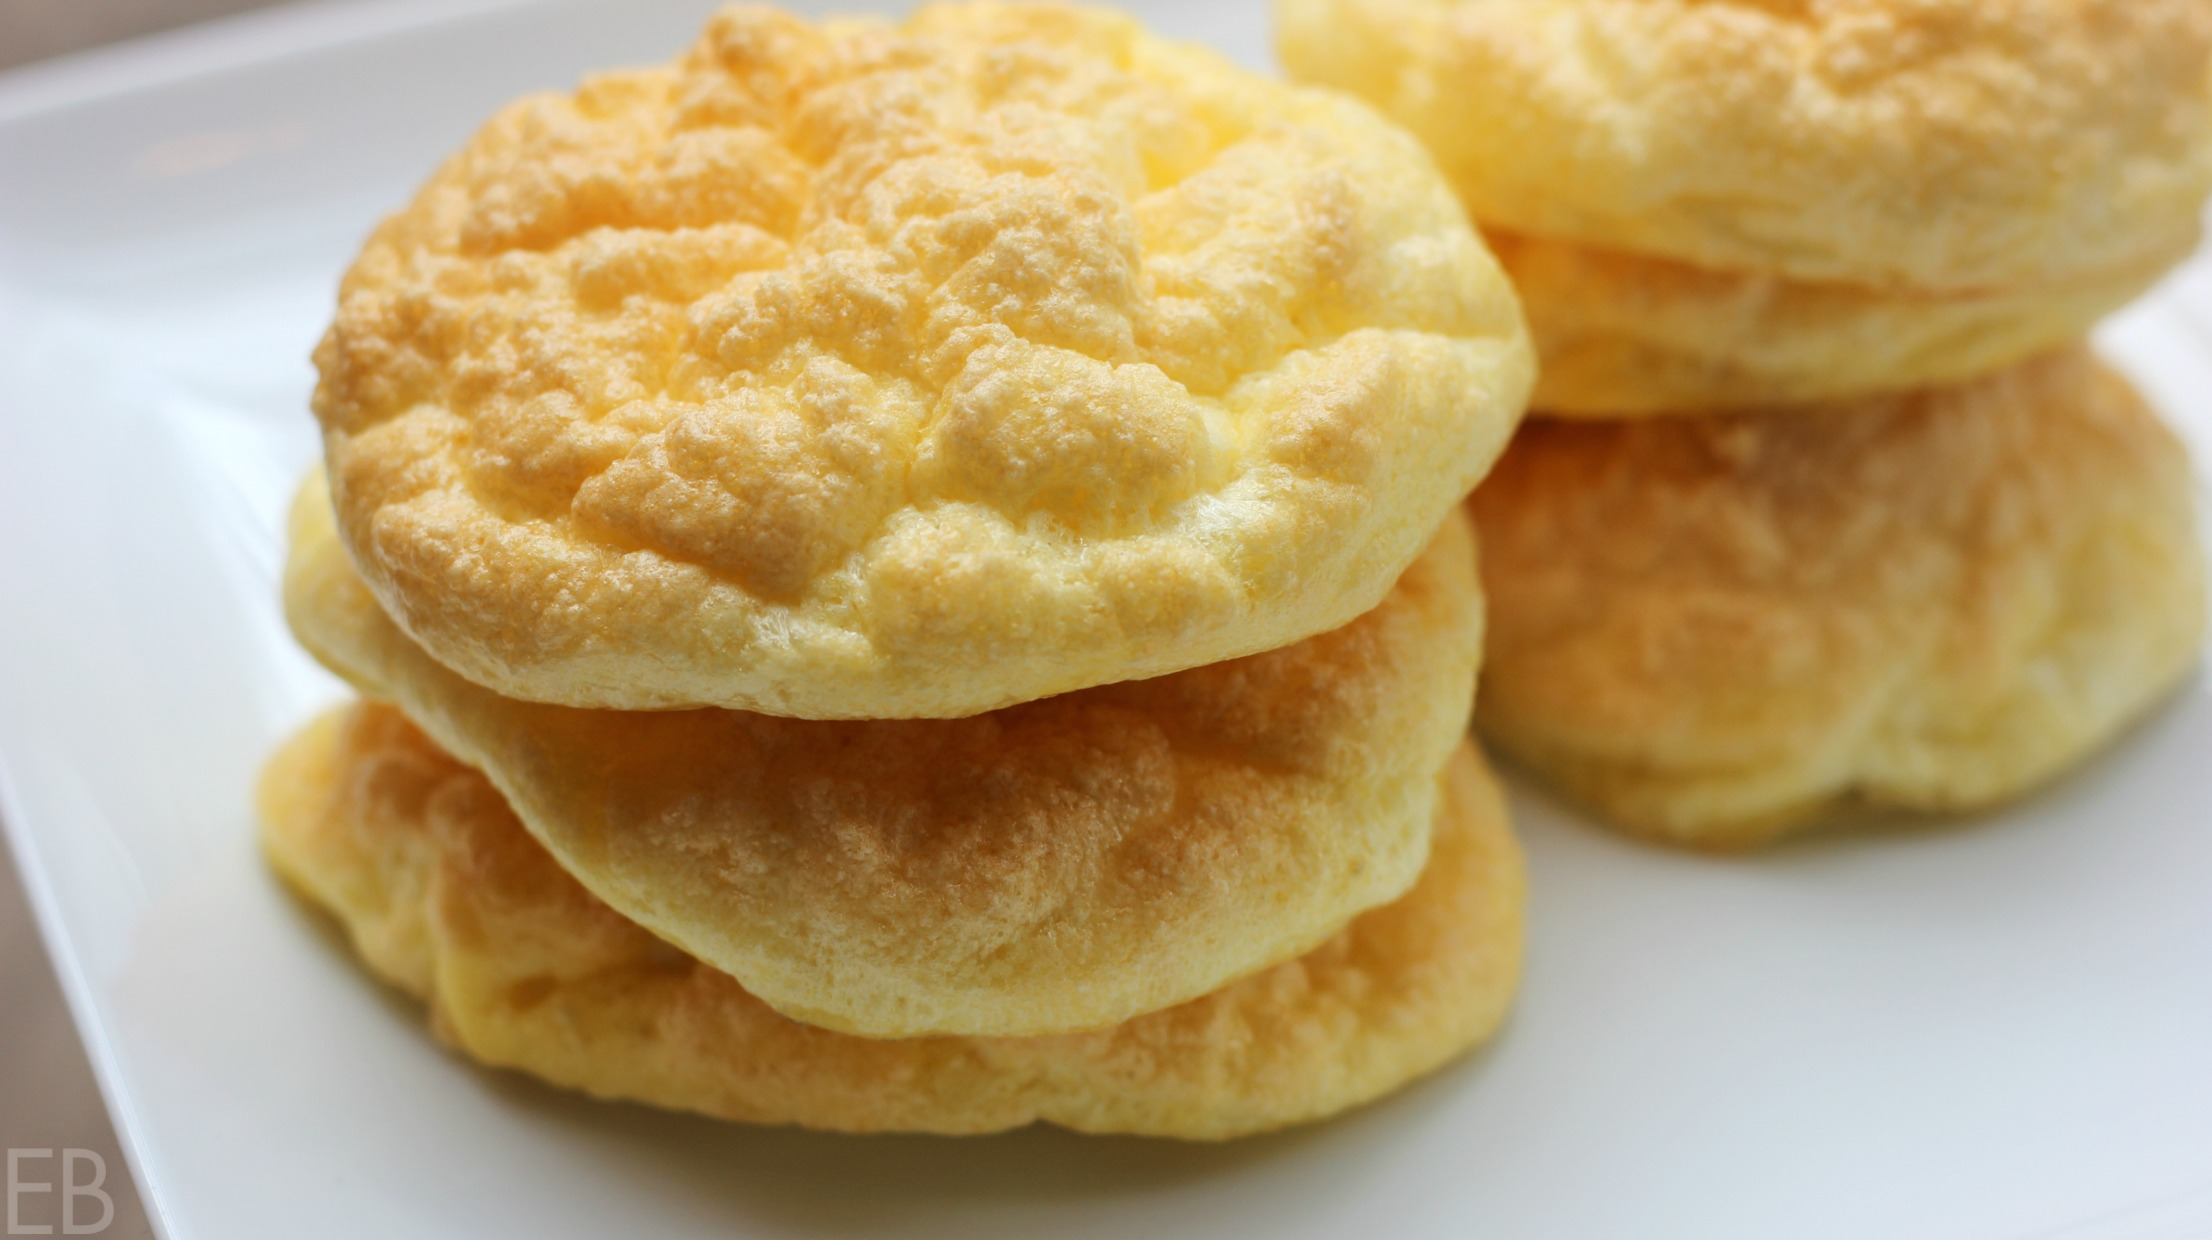 Cloud Bread Keto Paleo Gaps Diet High Protein Low Carb Lactose Free Dairy Free Option